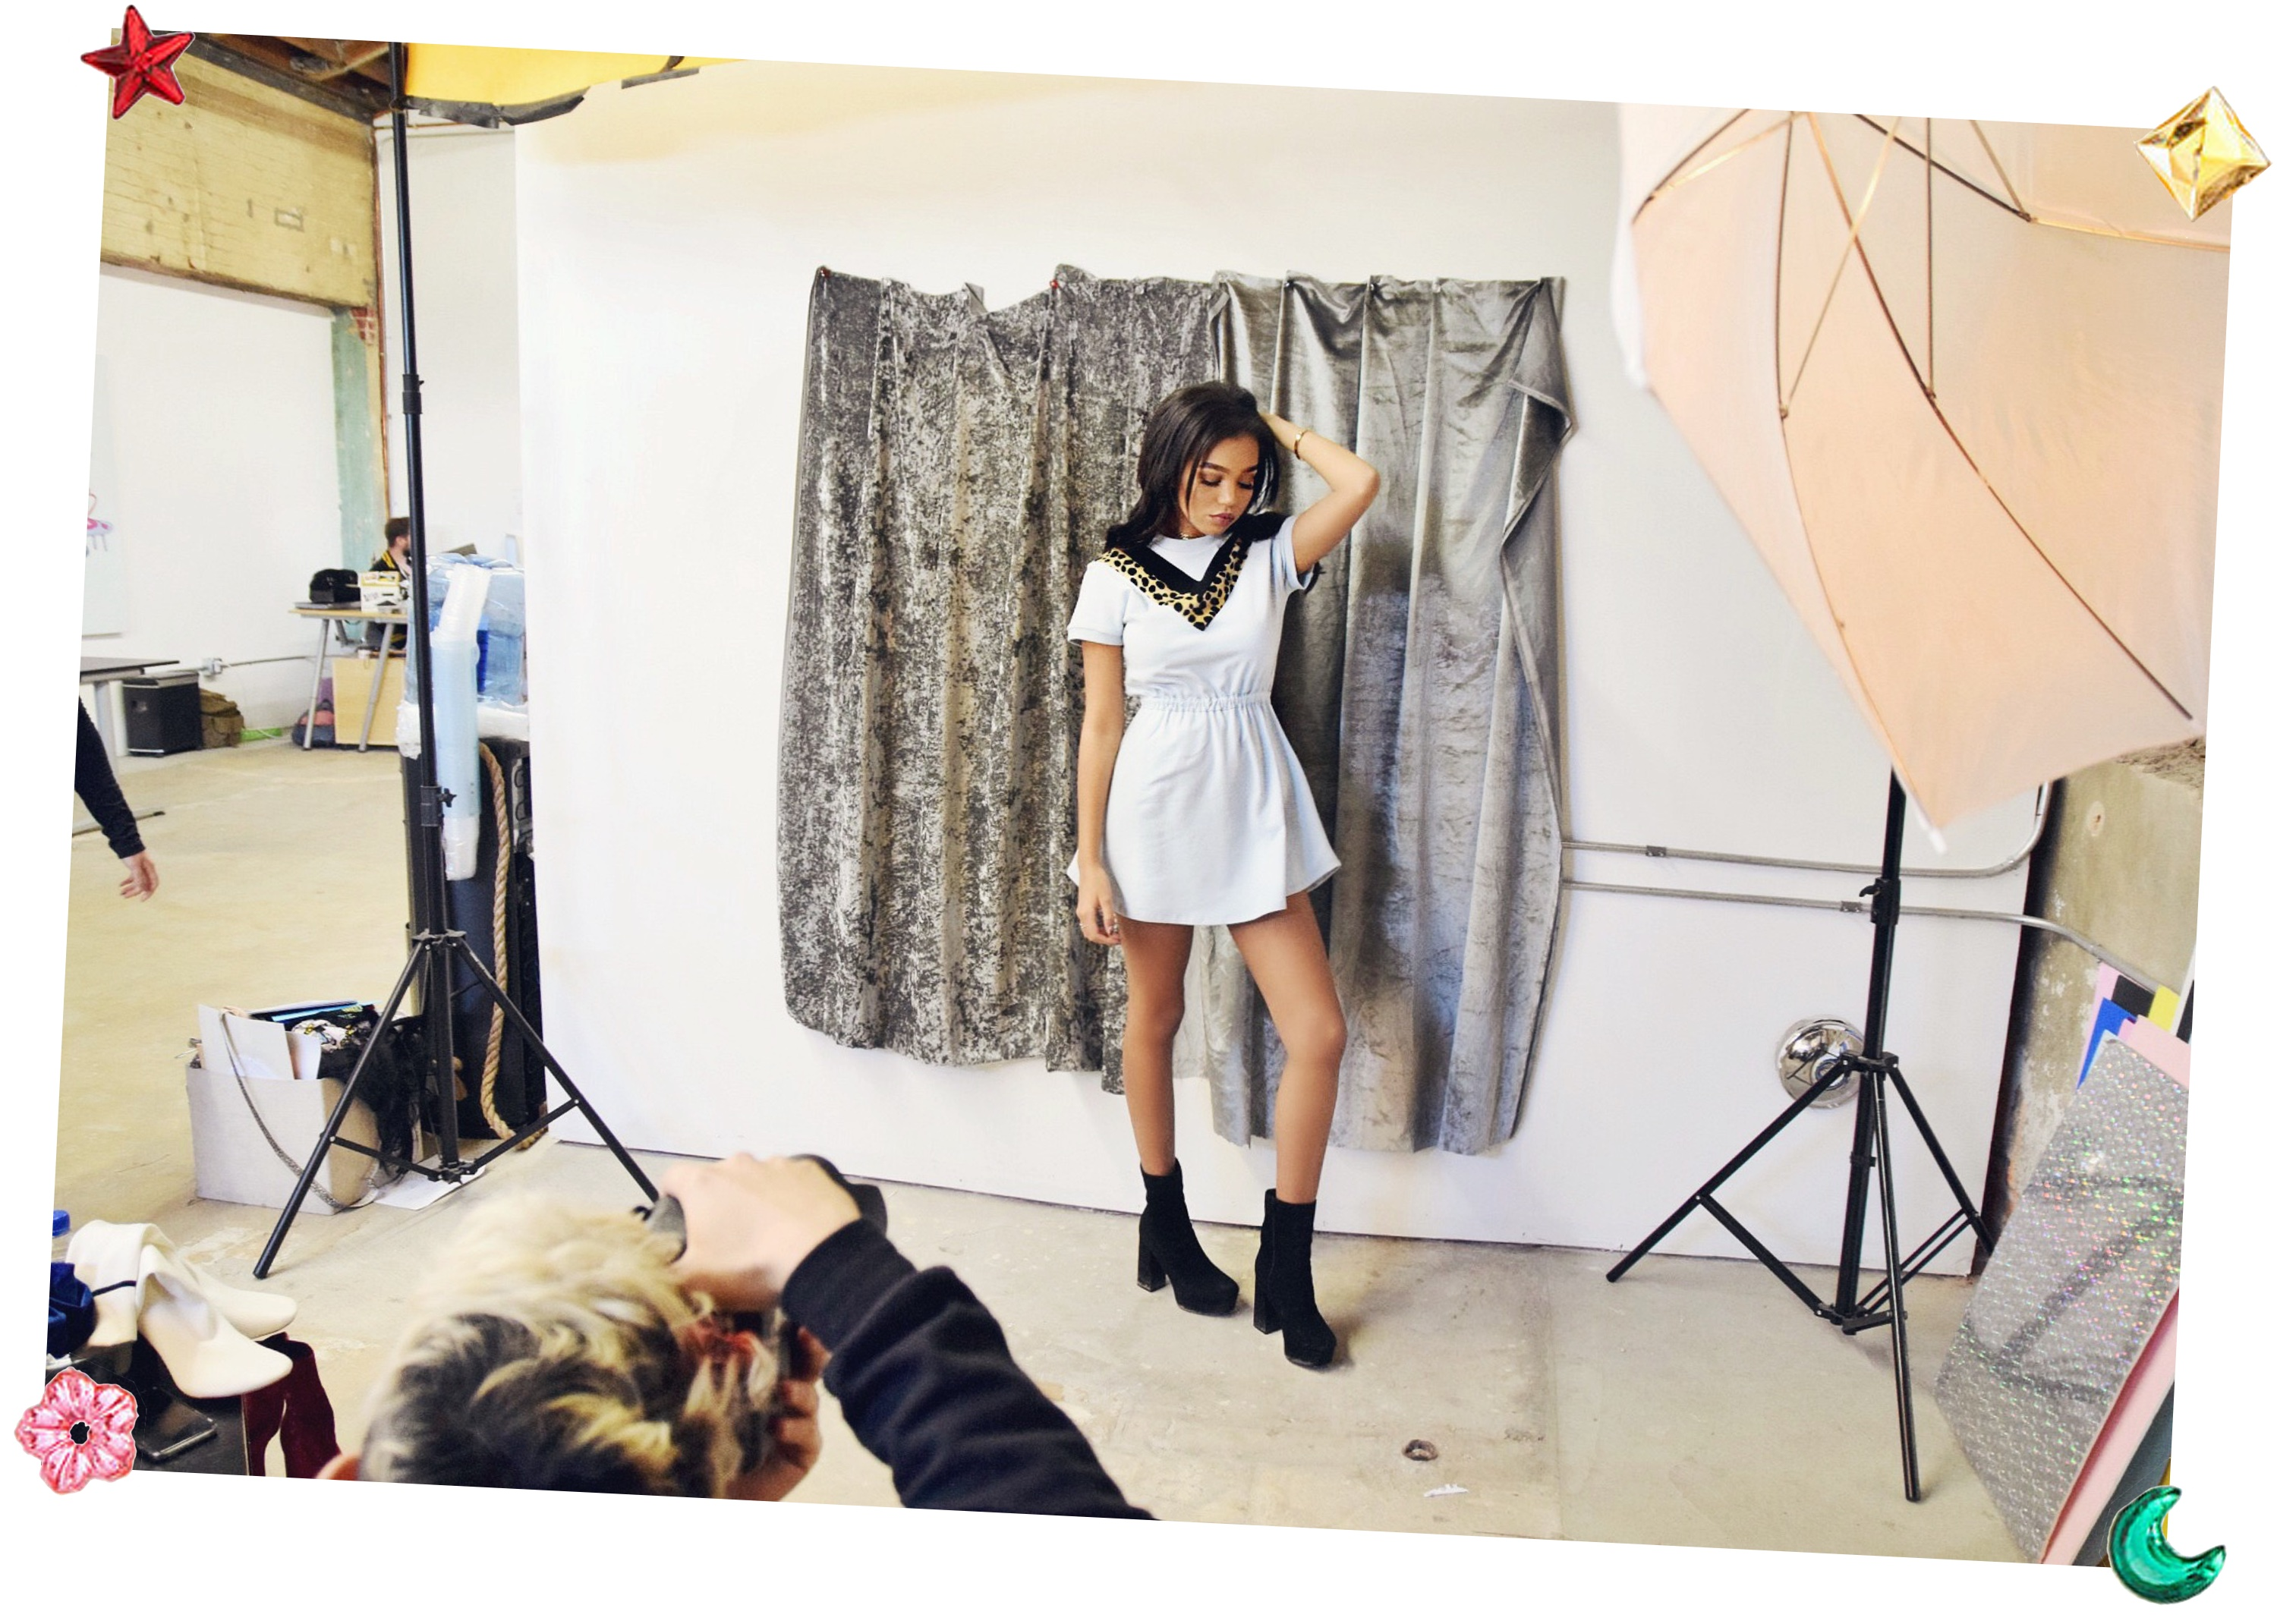 Behind The Scenes With Valfre // Ilse Valfre // Valfre Photoshoot // Los Angeles Fashion Blogger Daphne Blunt: To Style, With Love